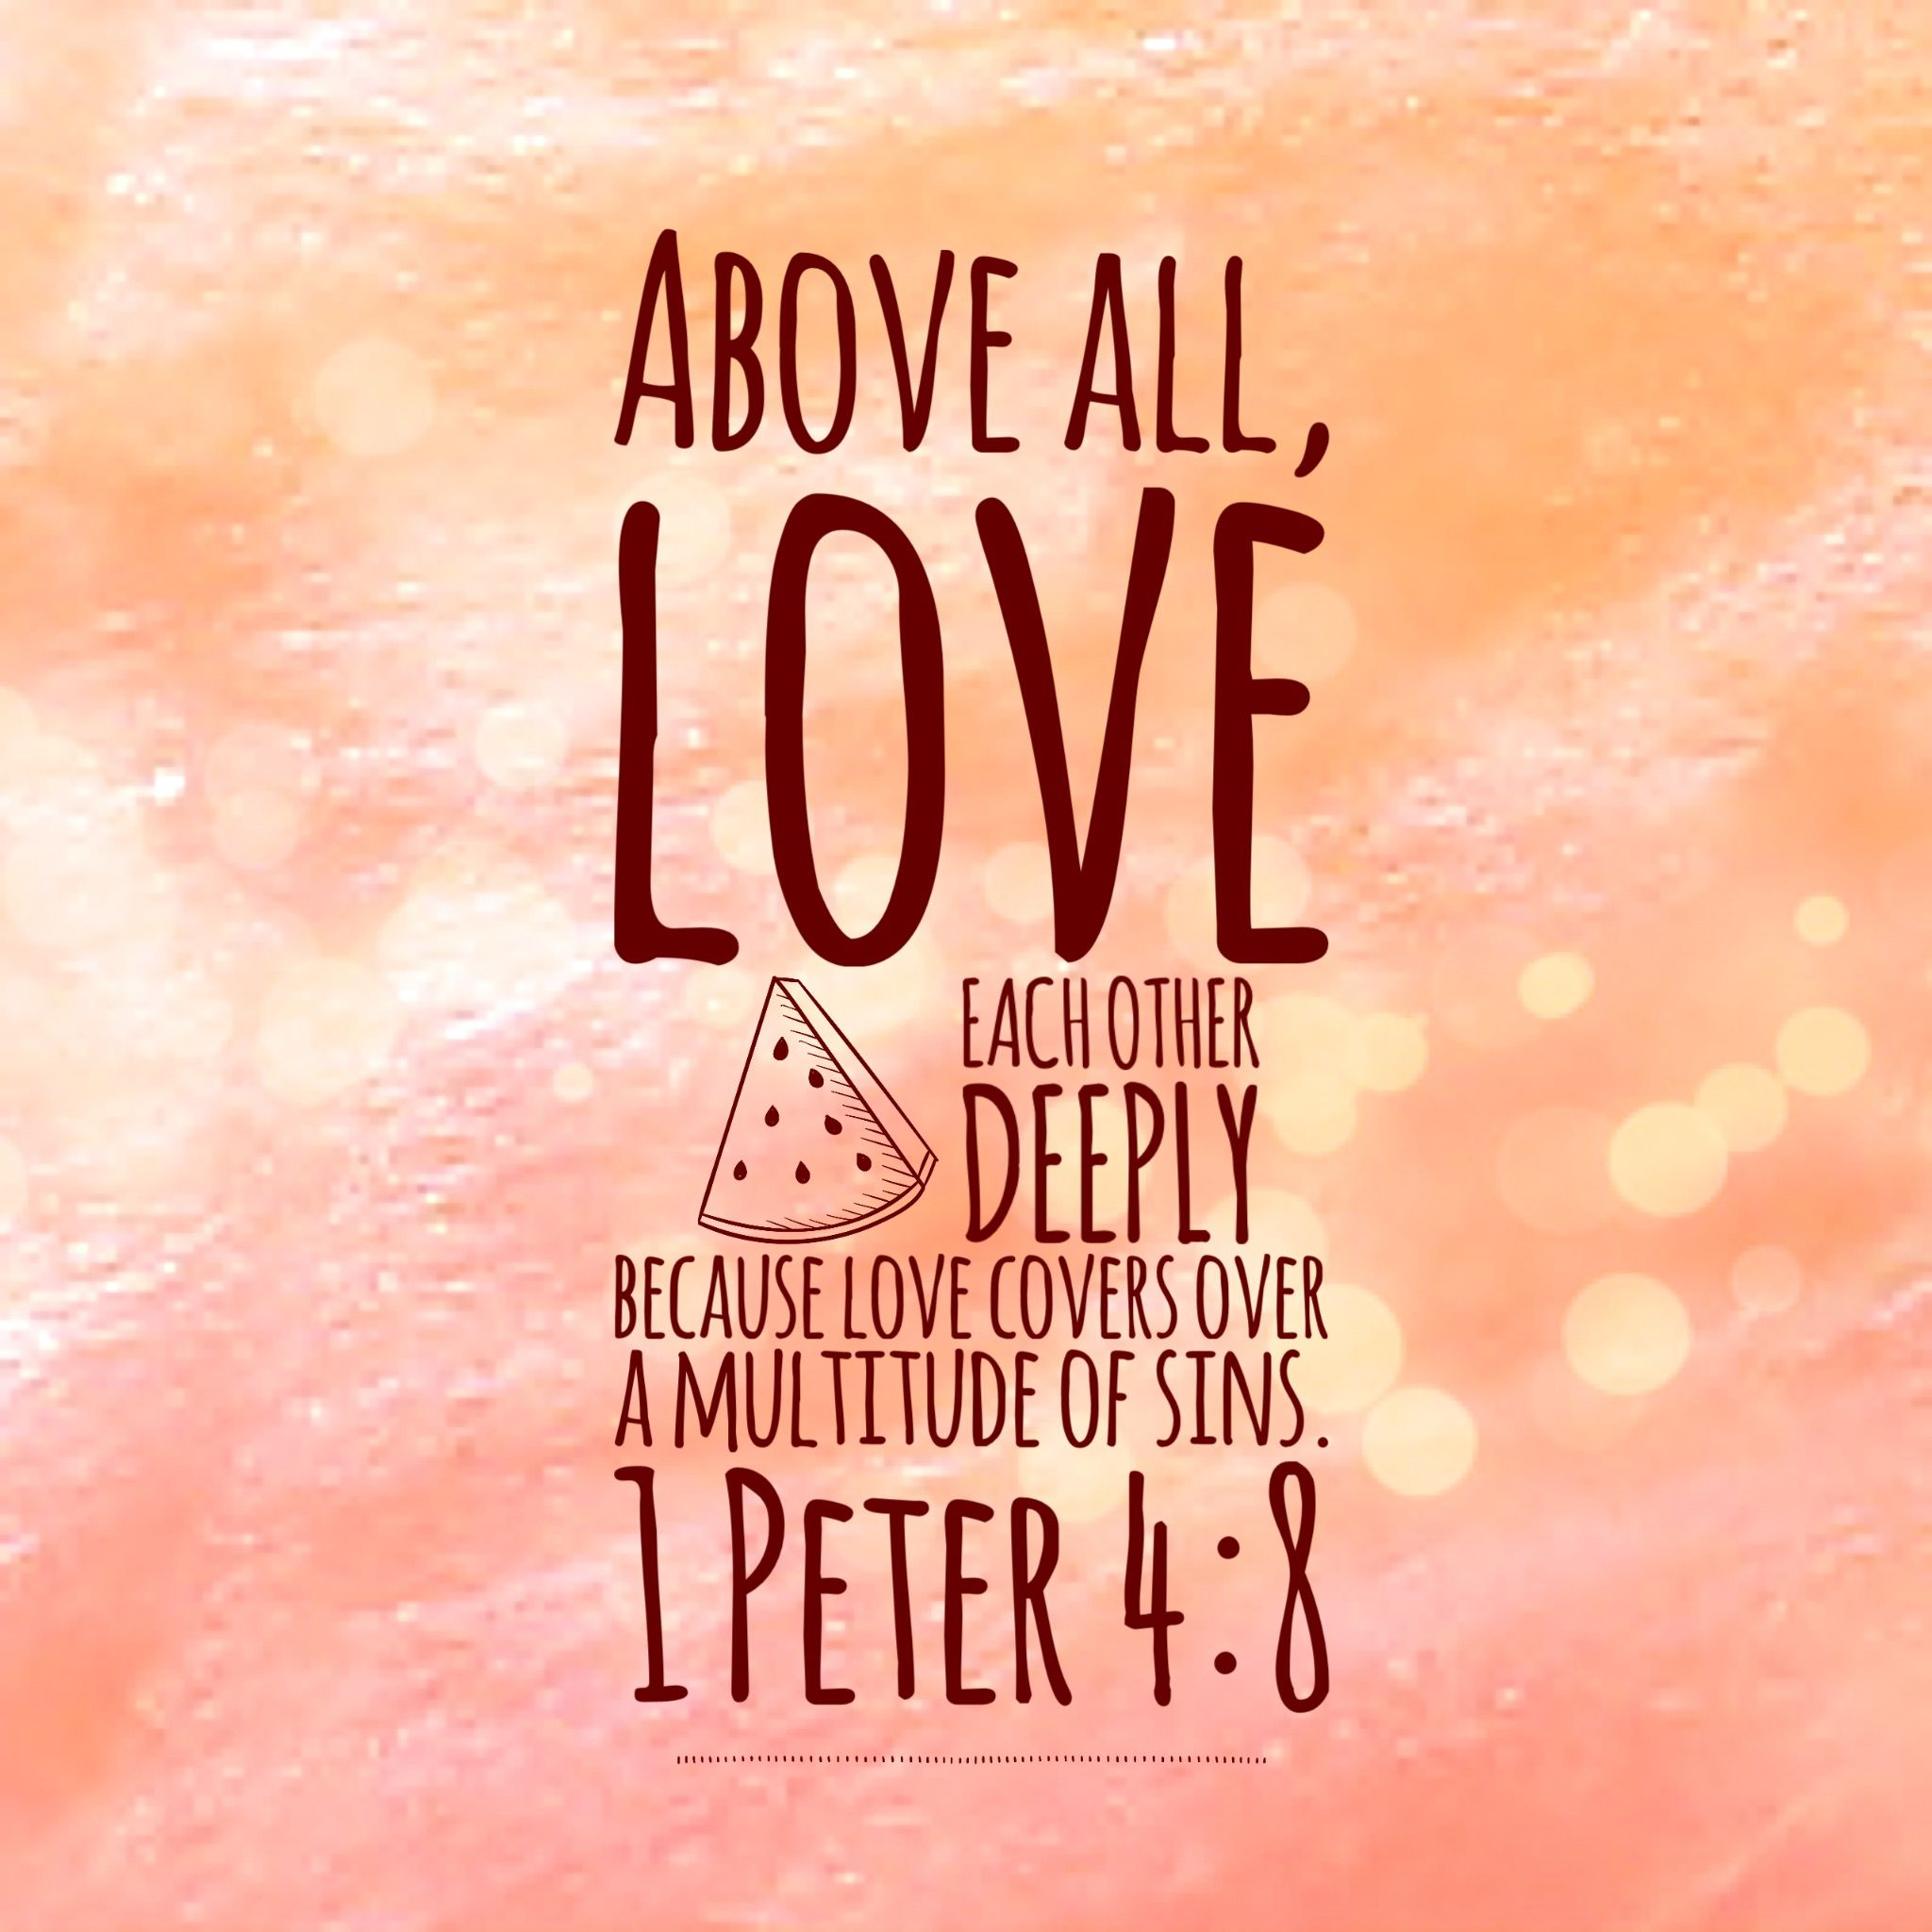 Love Each Other Religious: Above All, Love Each Other Deeply, Because Love Covers